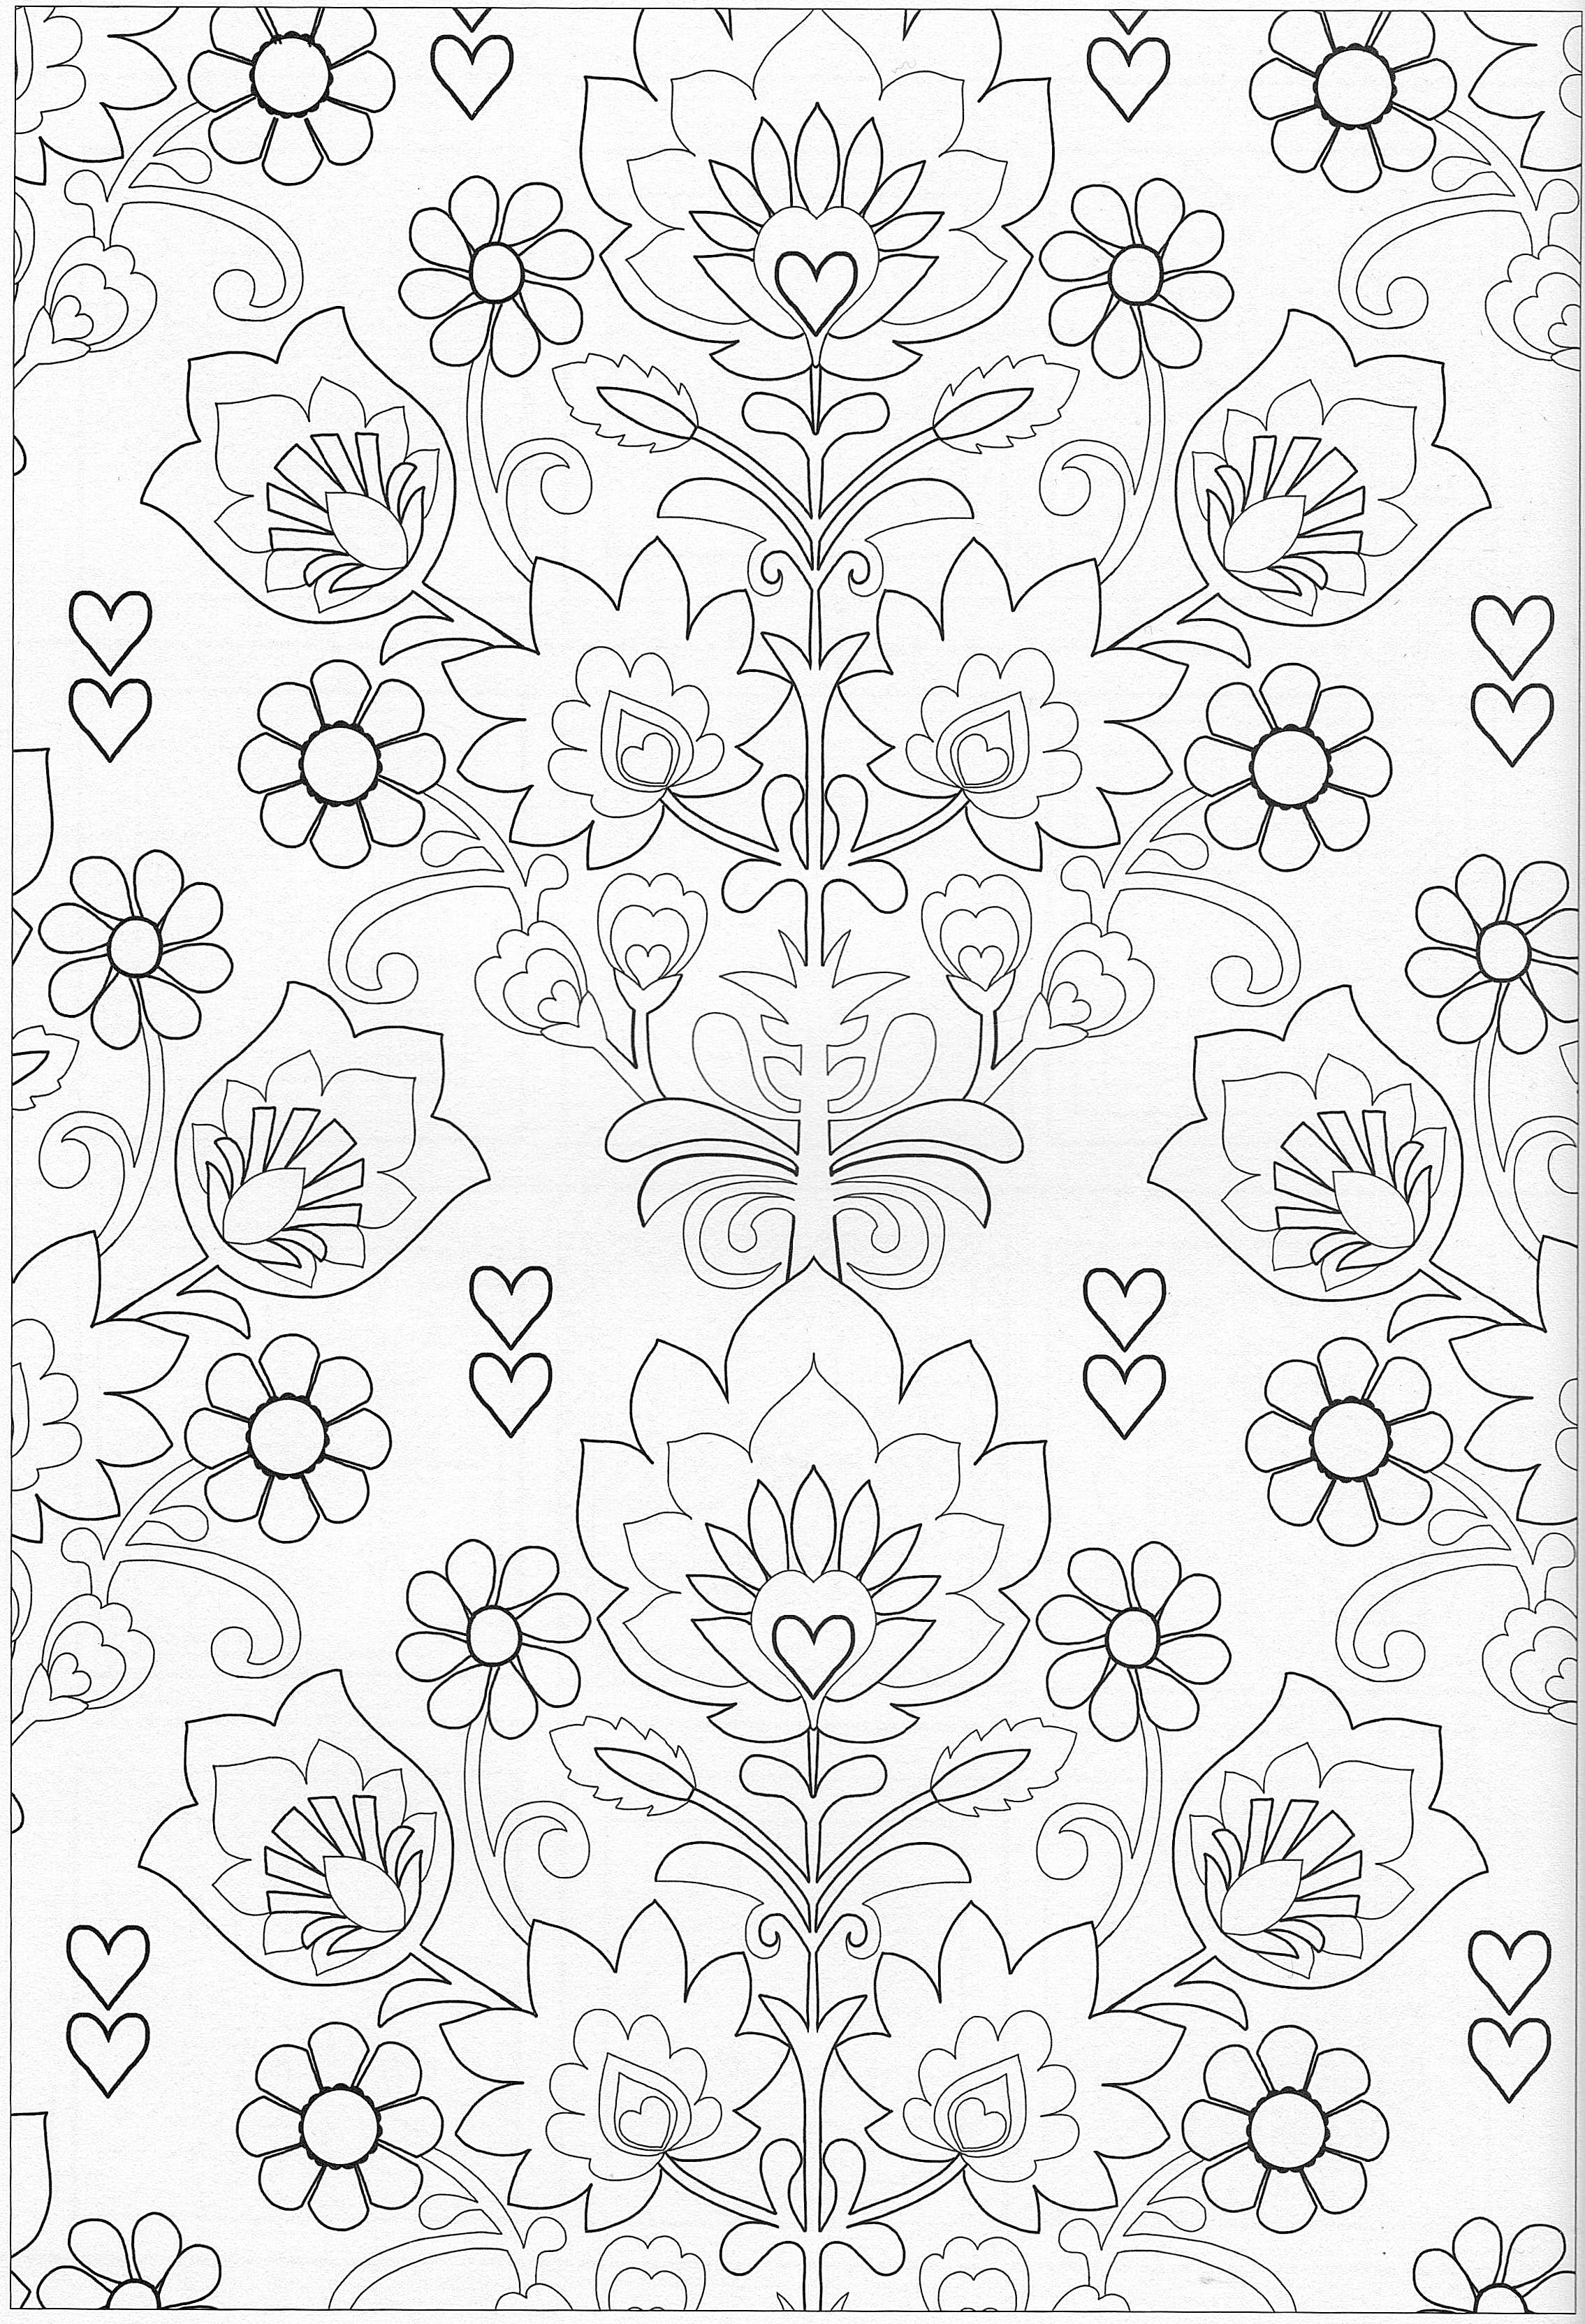 Scandinavian Coloring Book Pg 40 | гладь | Pinterest | Bordado ...